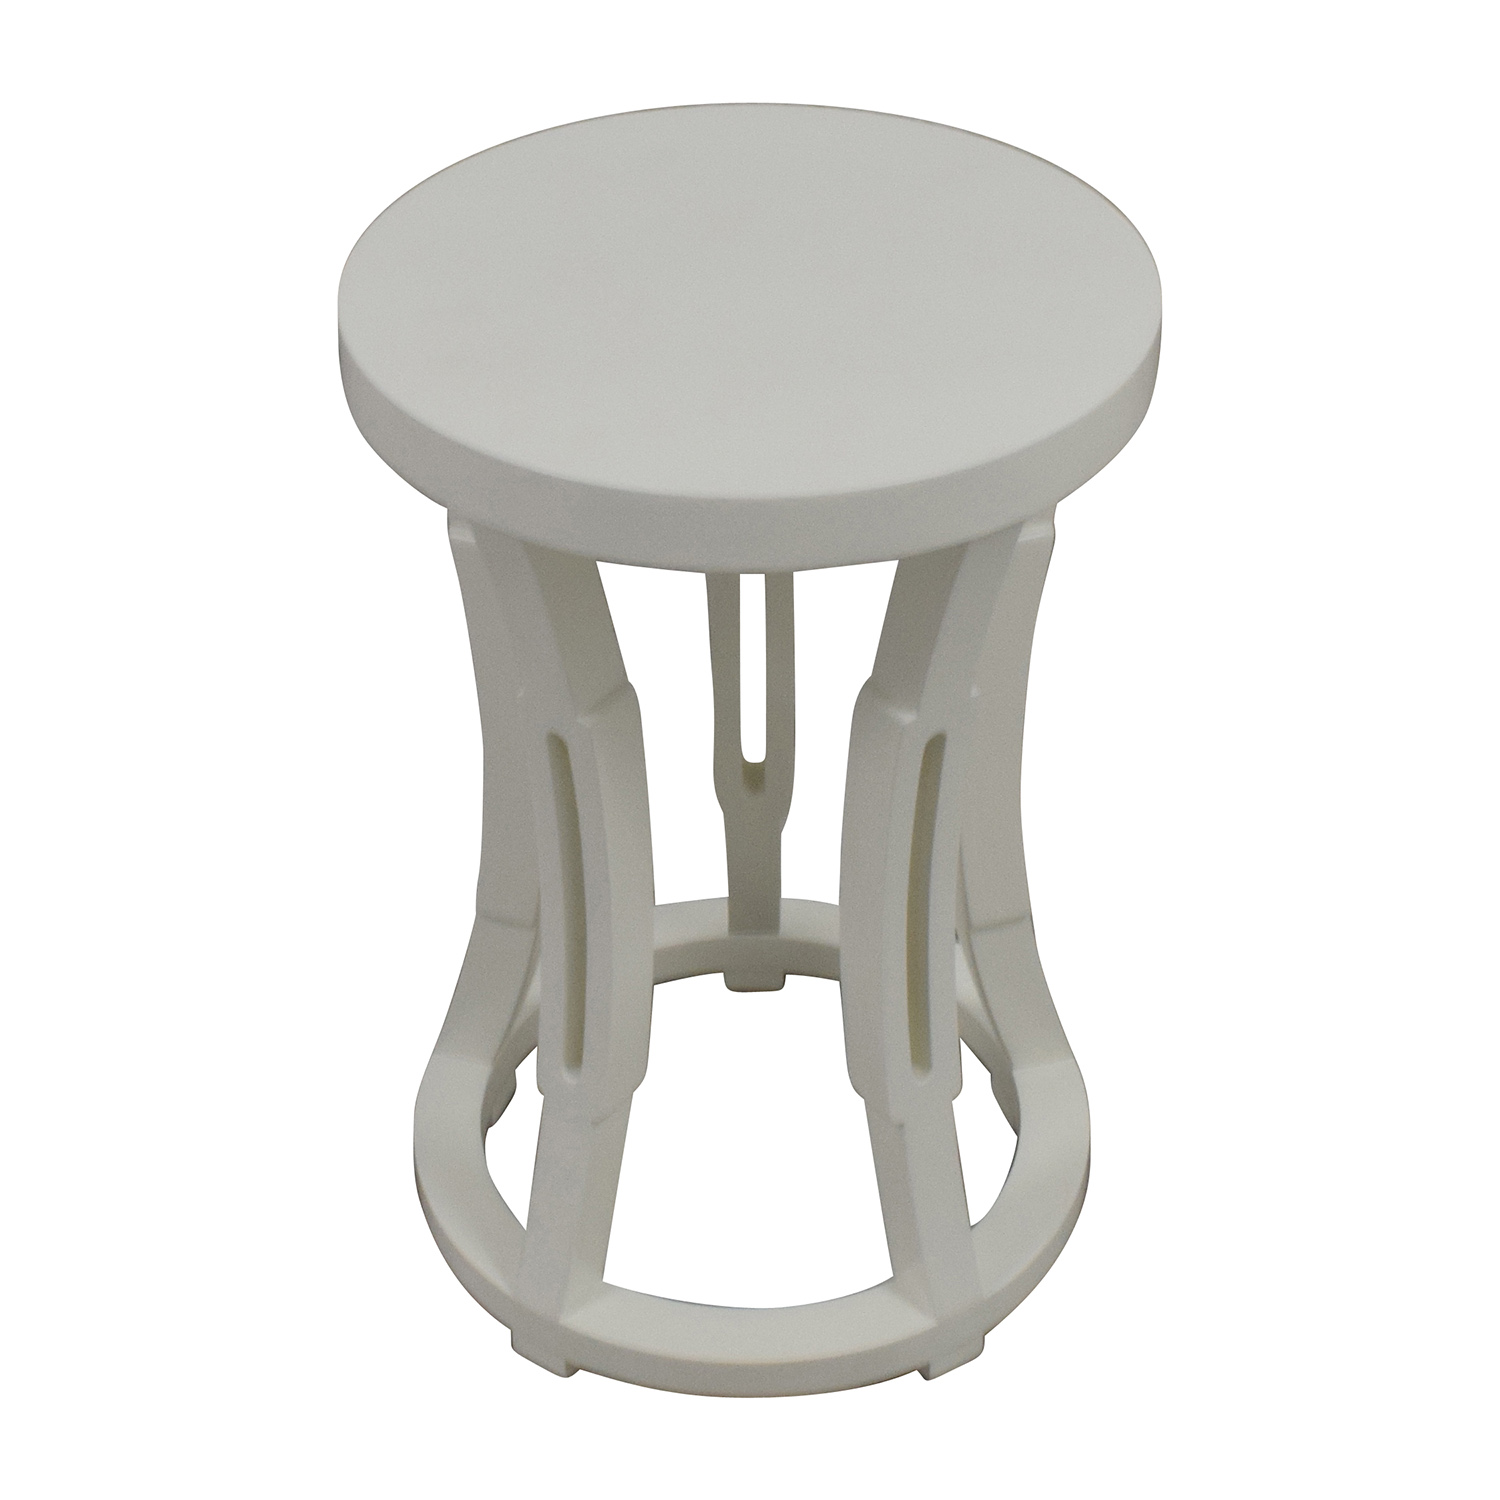 Bungalow 5 Hour Glass Stool Side Table or Stool / Sofas